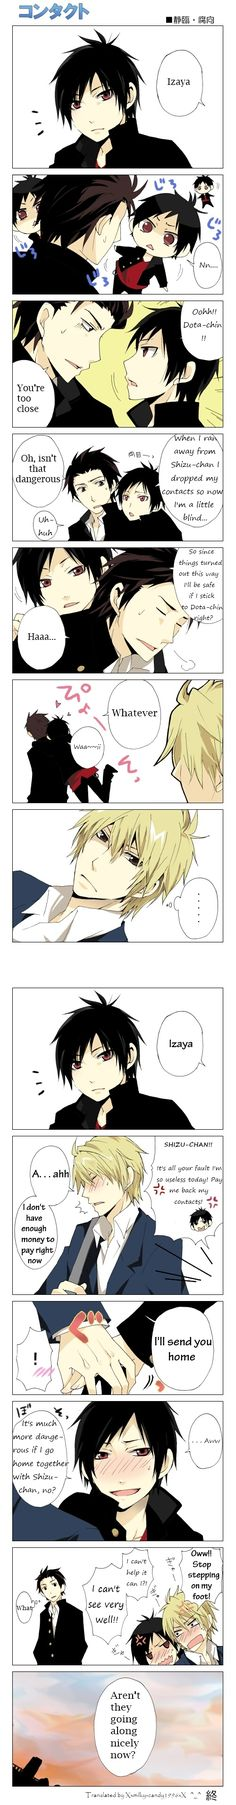 "Hahaha shizuo ""Stop stepping on my foot!!"""